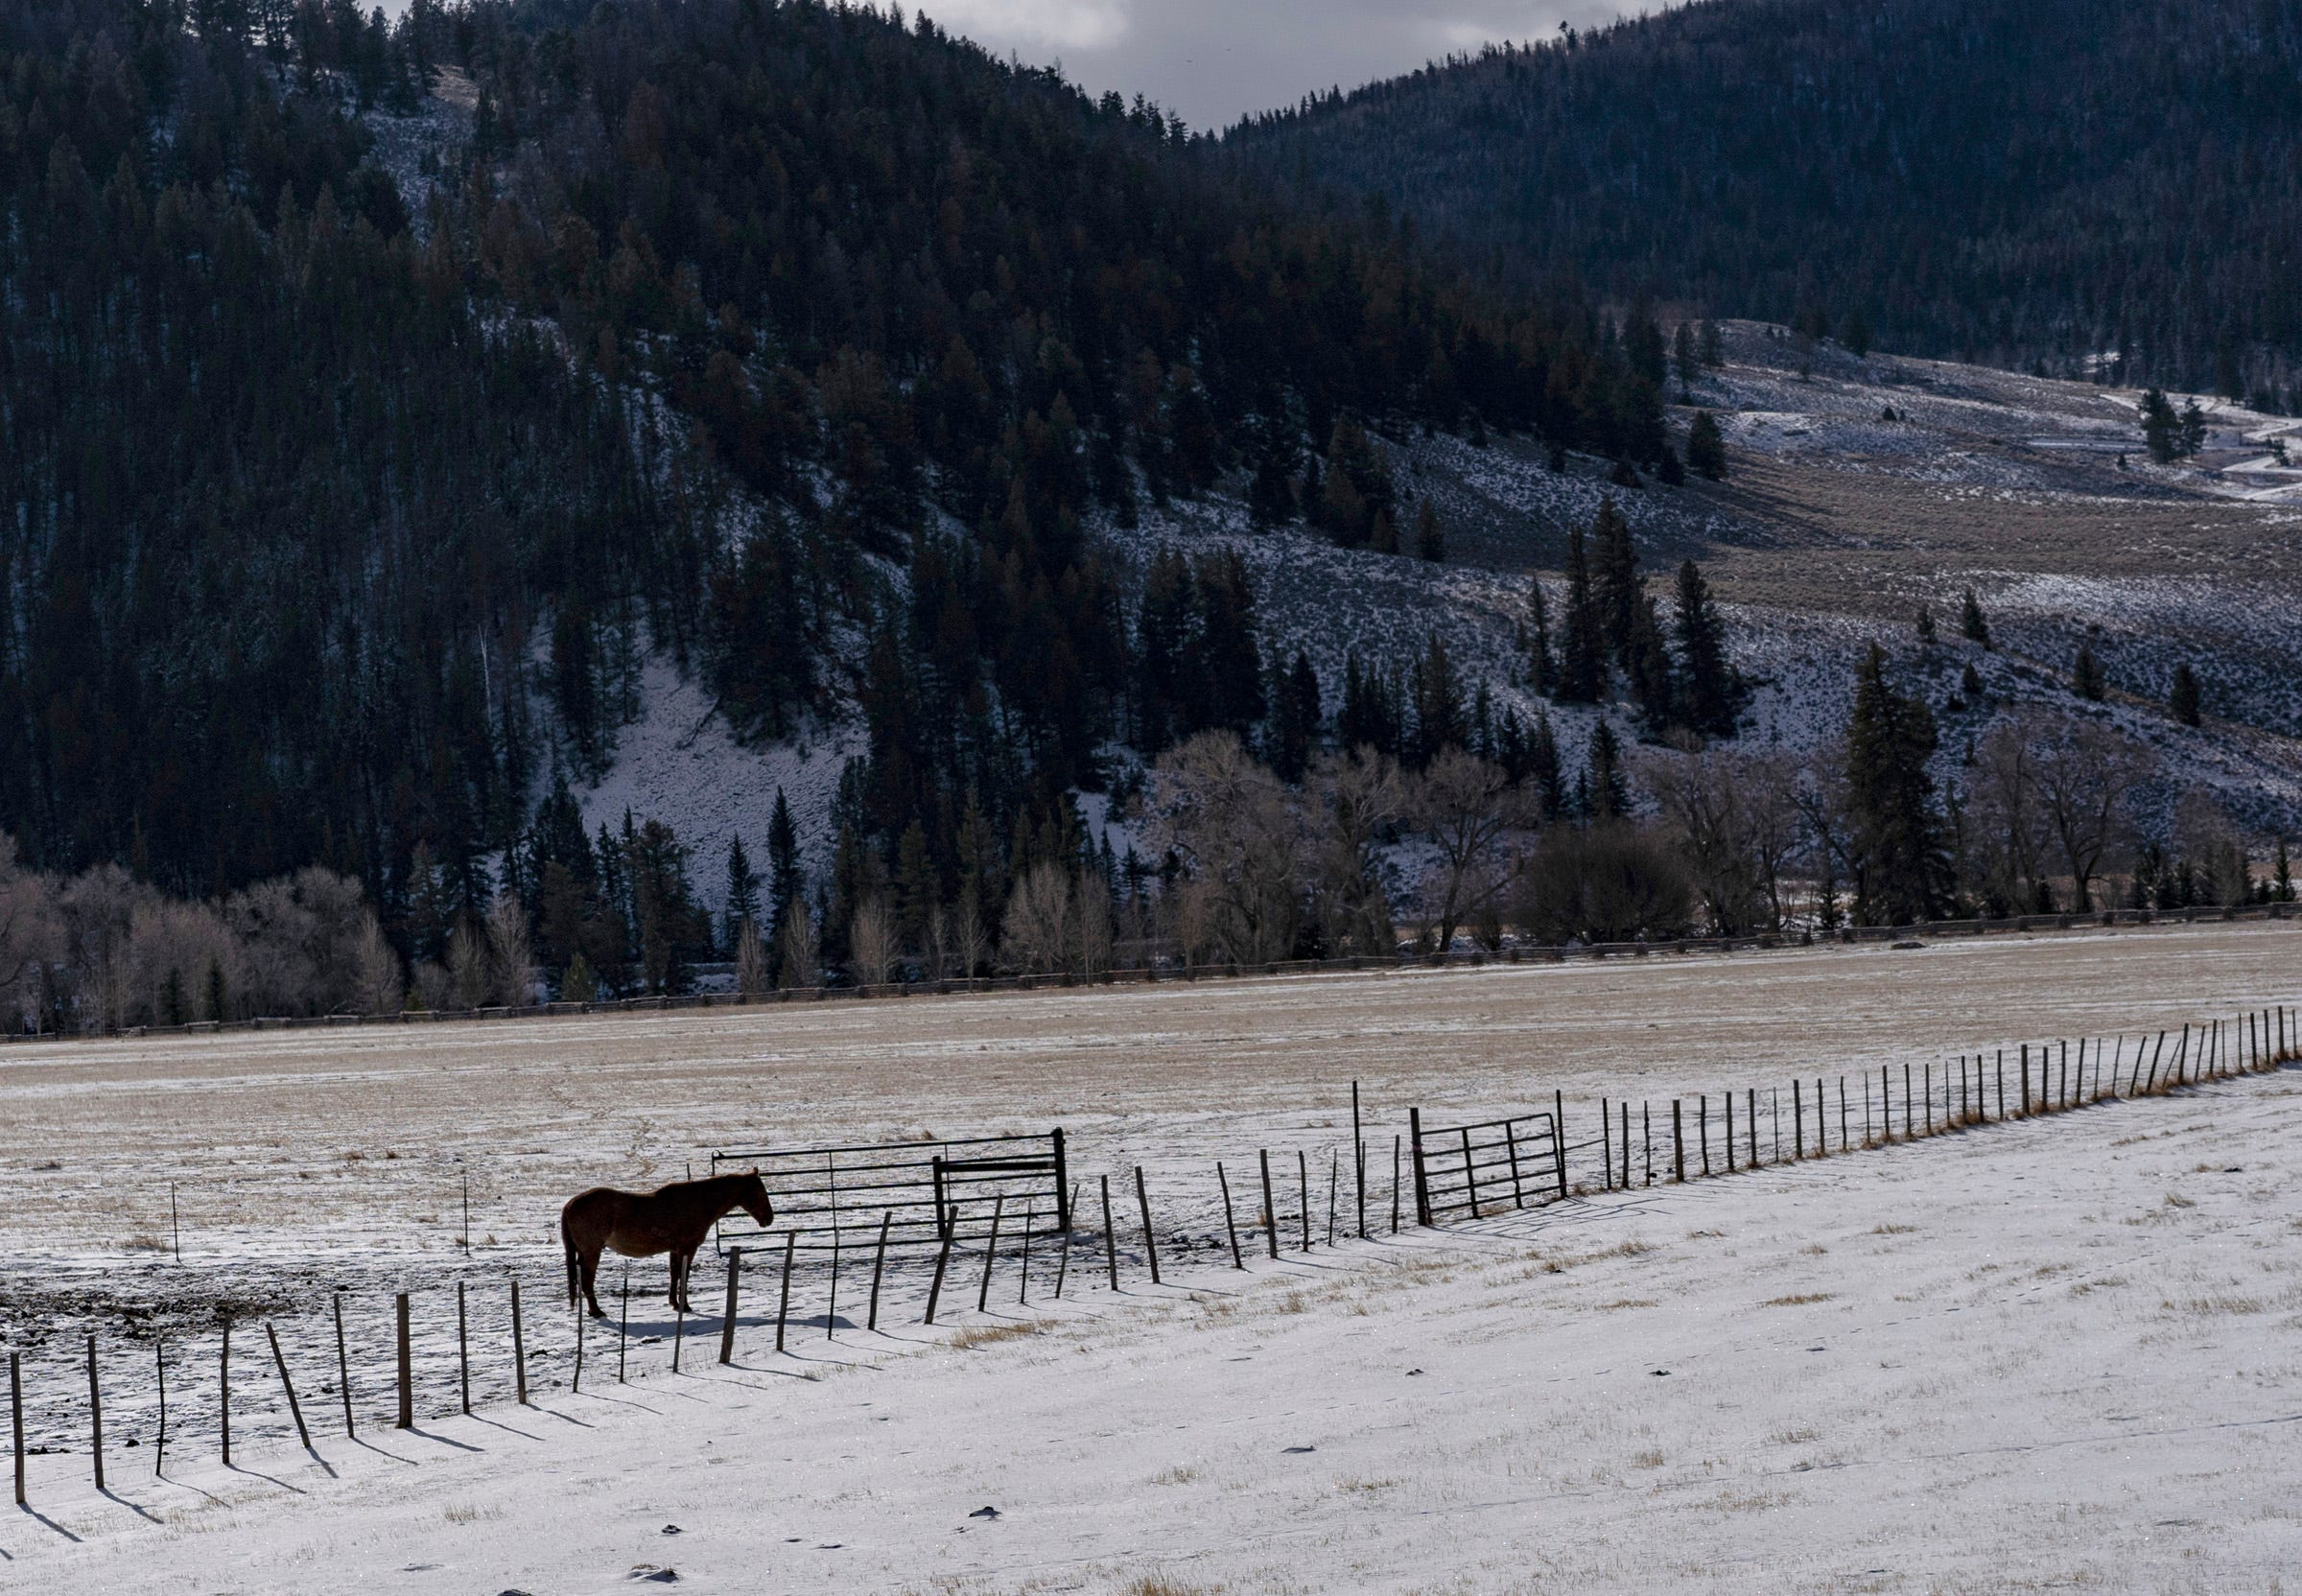 Snow blankets the landscape near Taylor Park Reservoir in the Gunnison River Basin in Colorado.